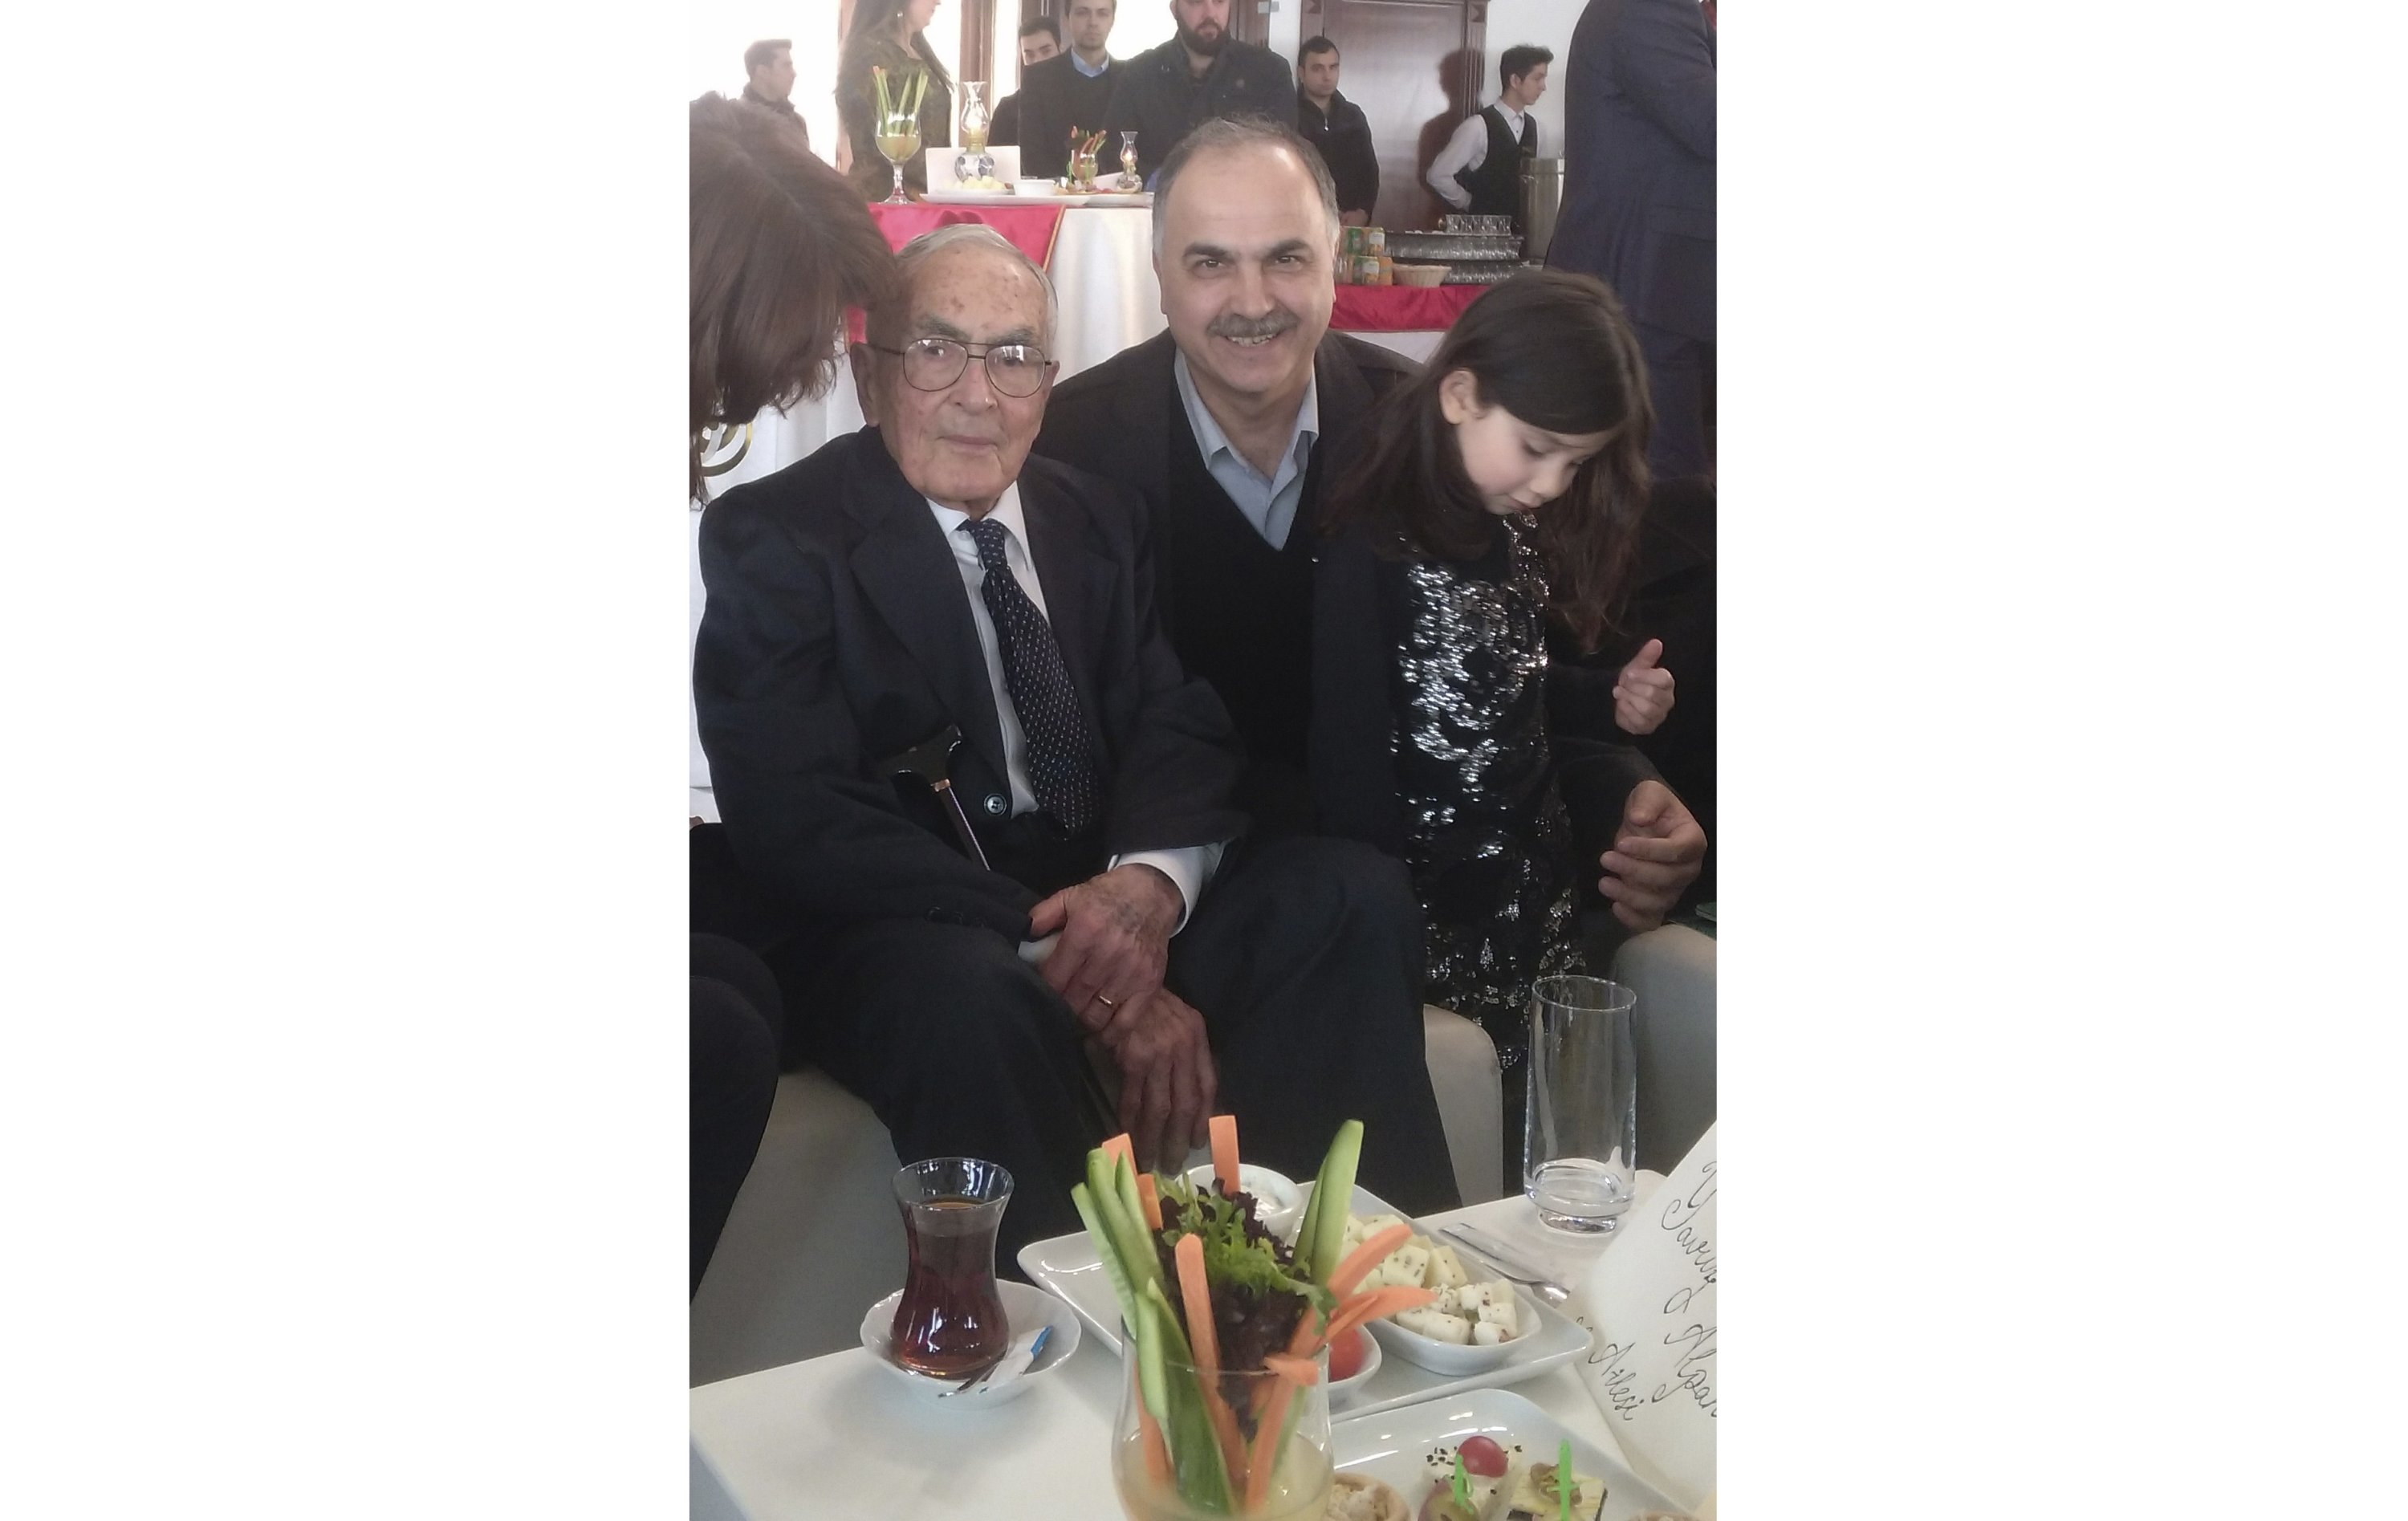 Alpan posing with with his granddaughter and historian Ibrahim Pazan.